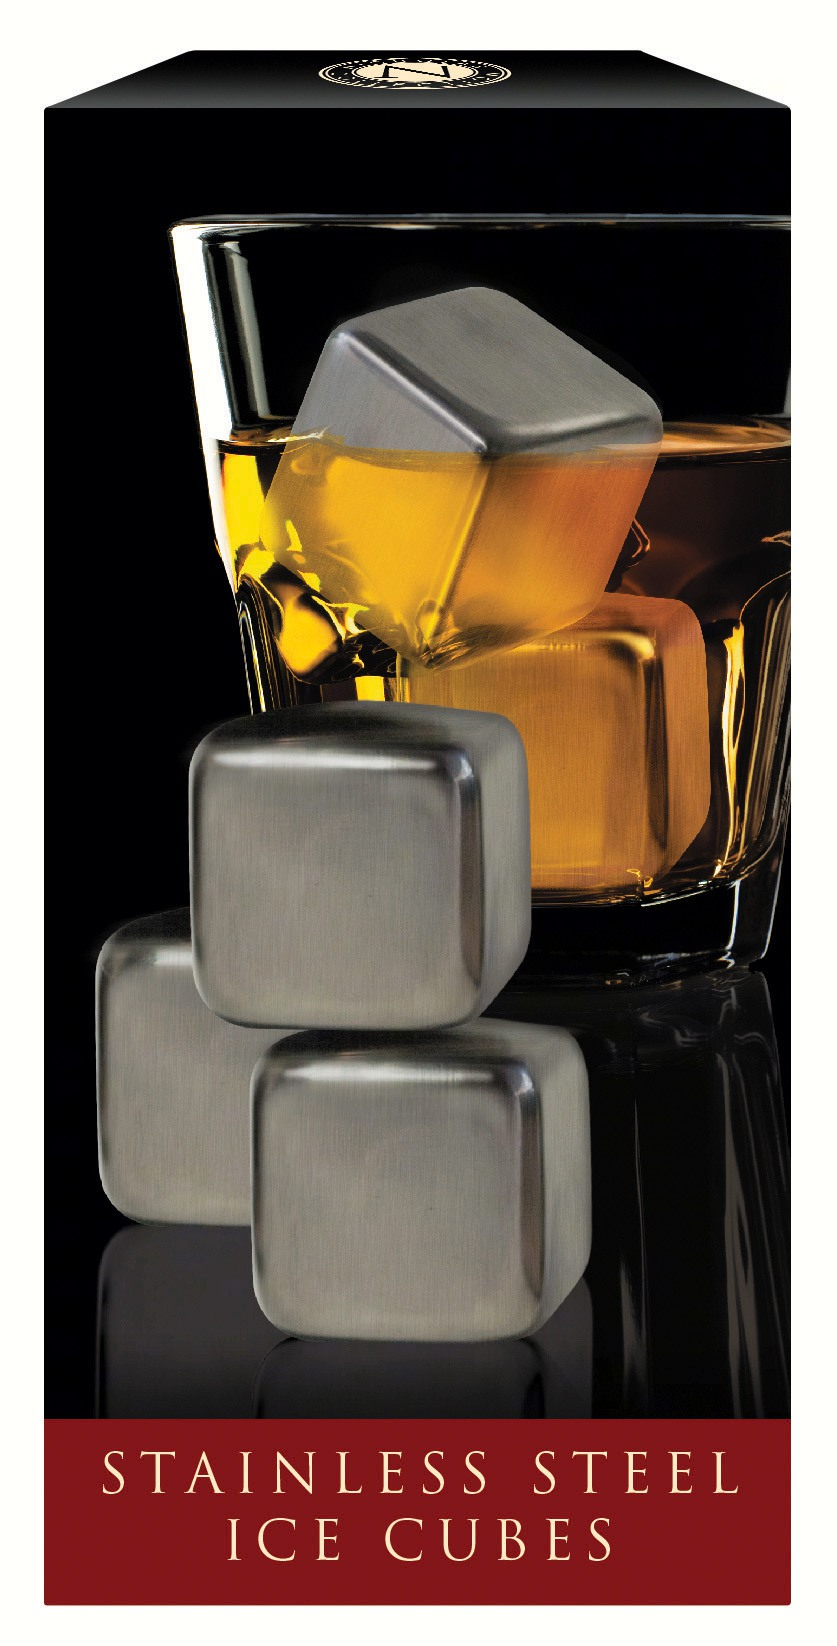 Nicholas, Stainless Steel Ice Cubes